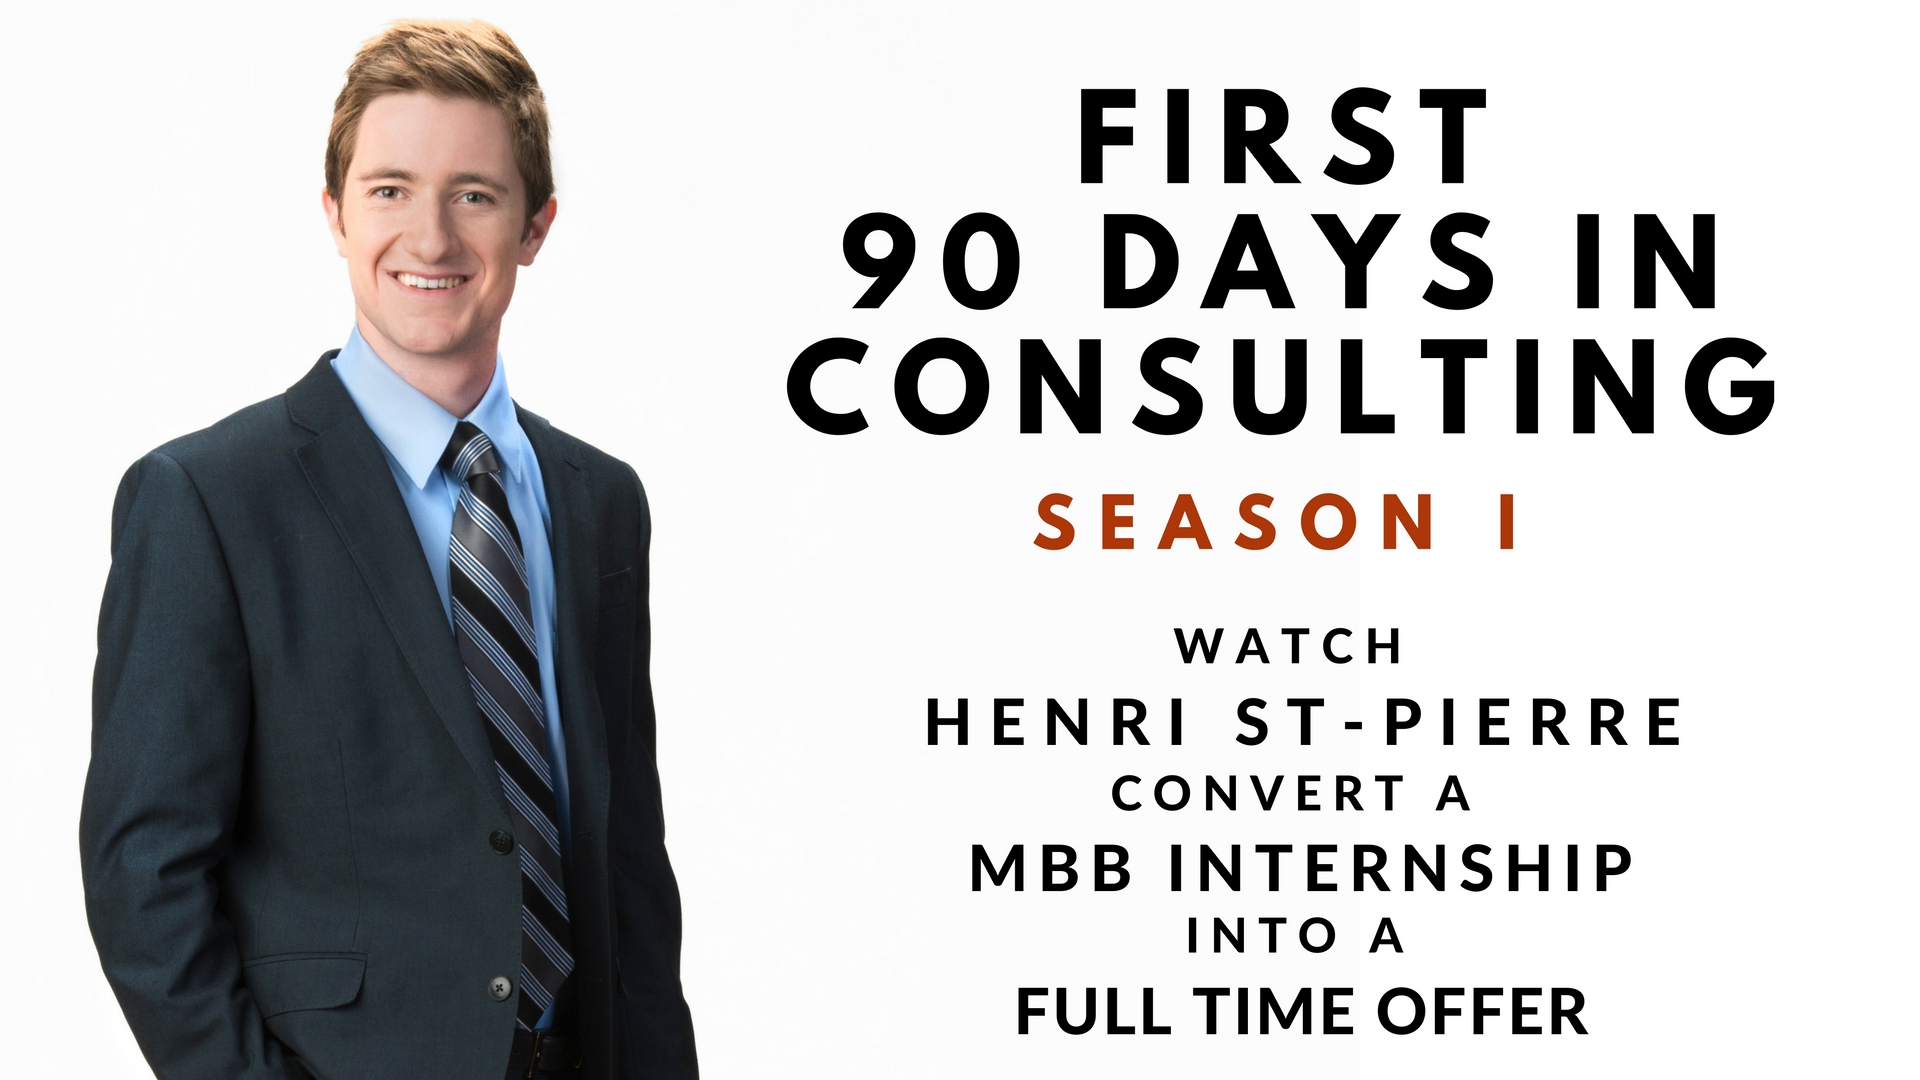 Poster for First 90 Days in Consulting